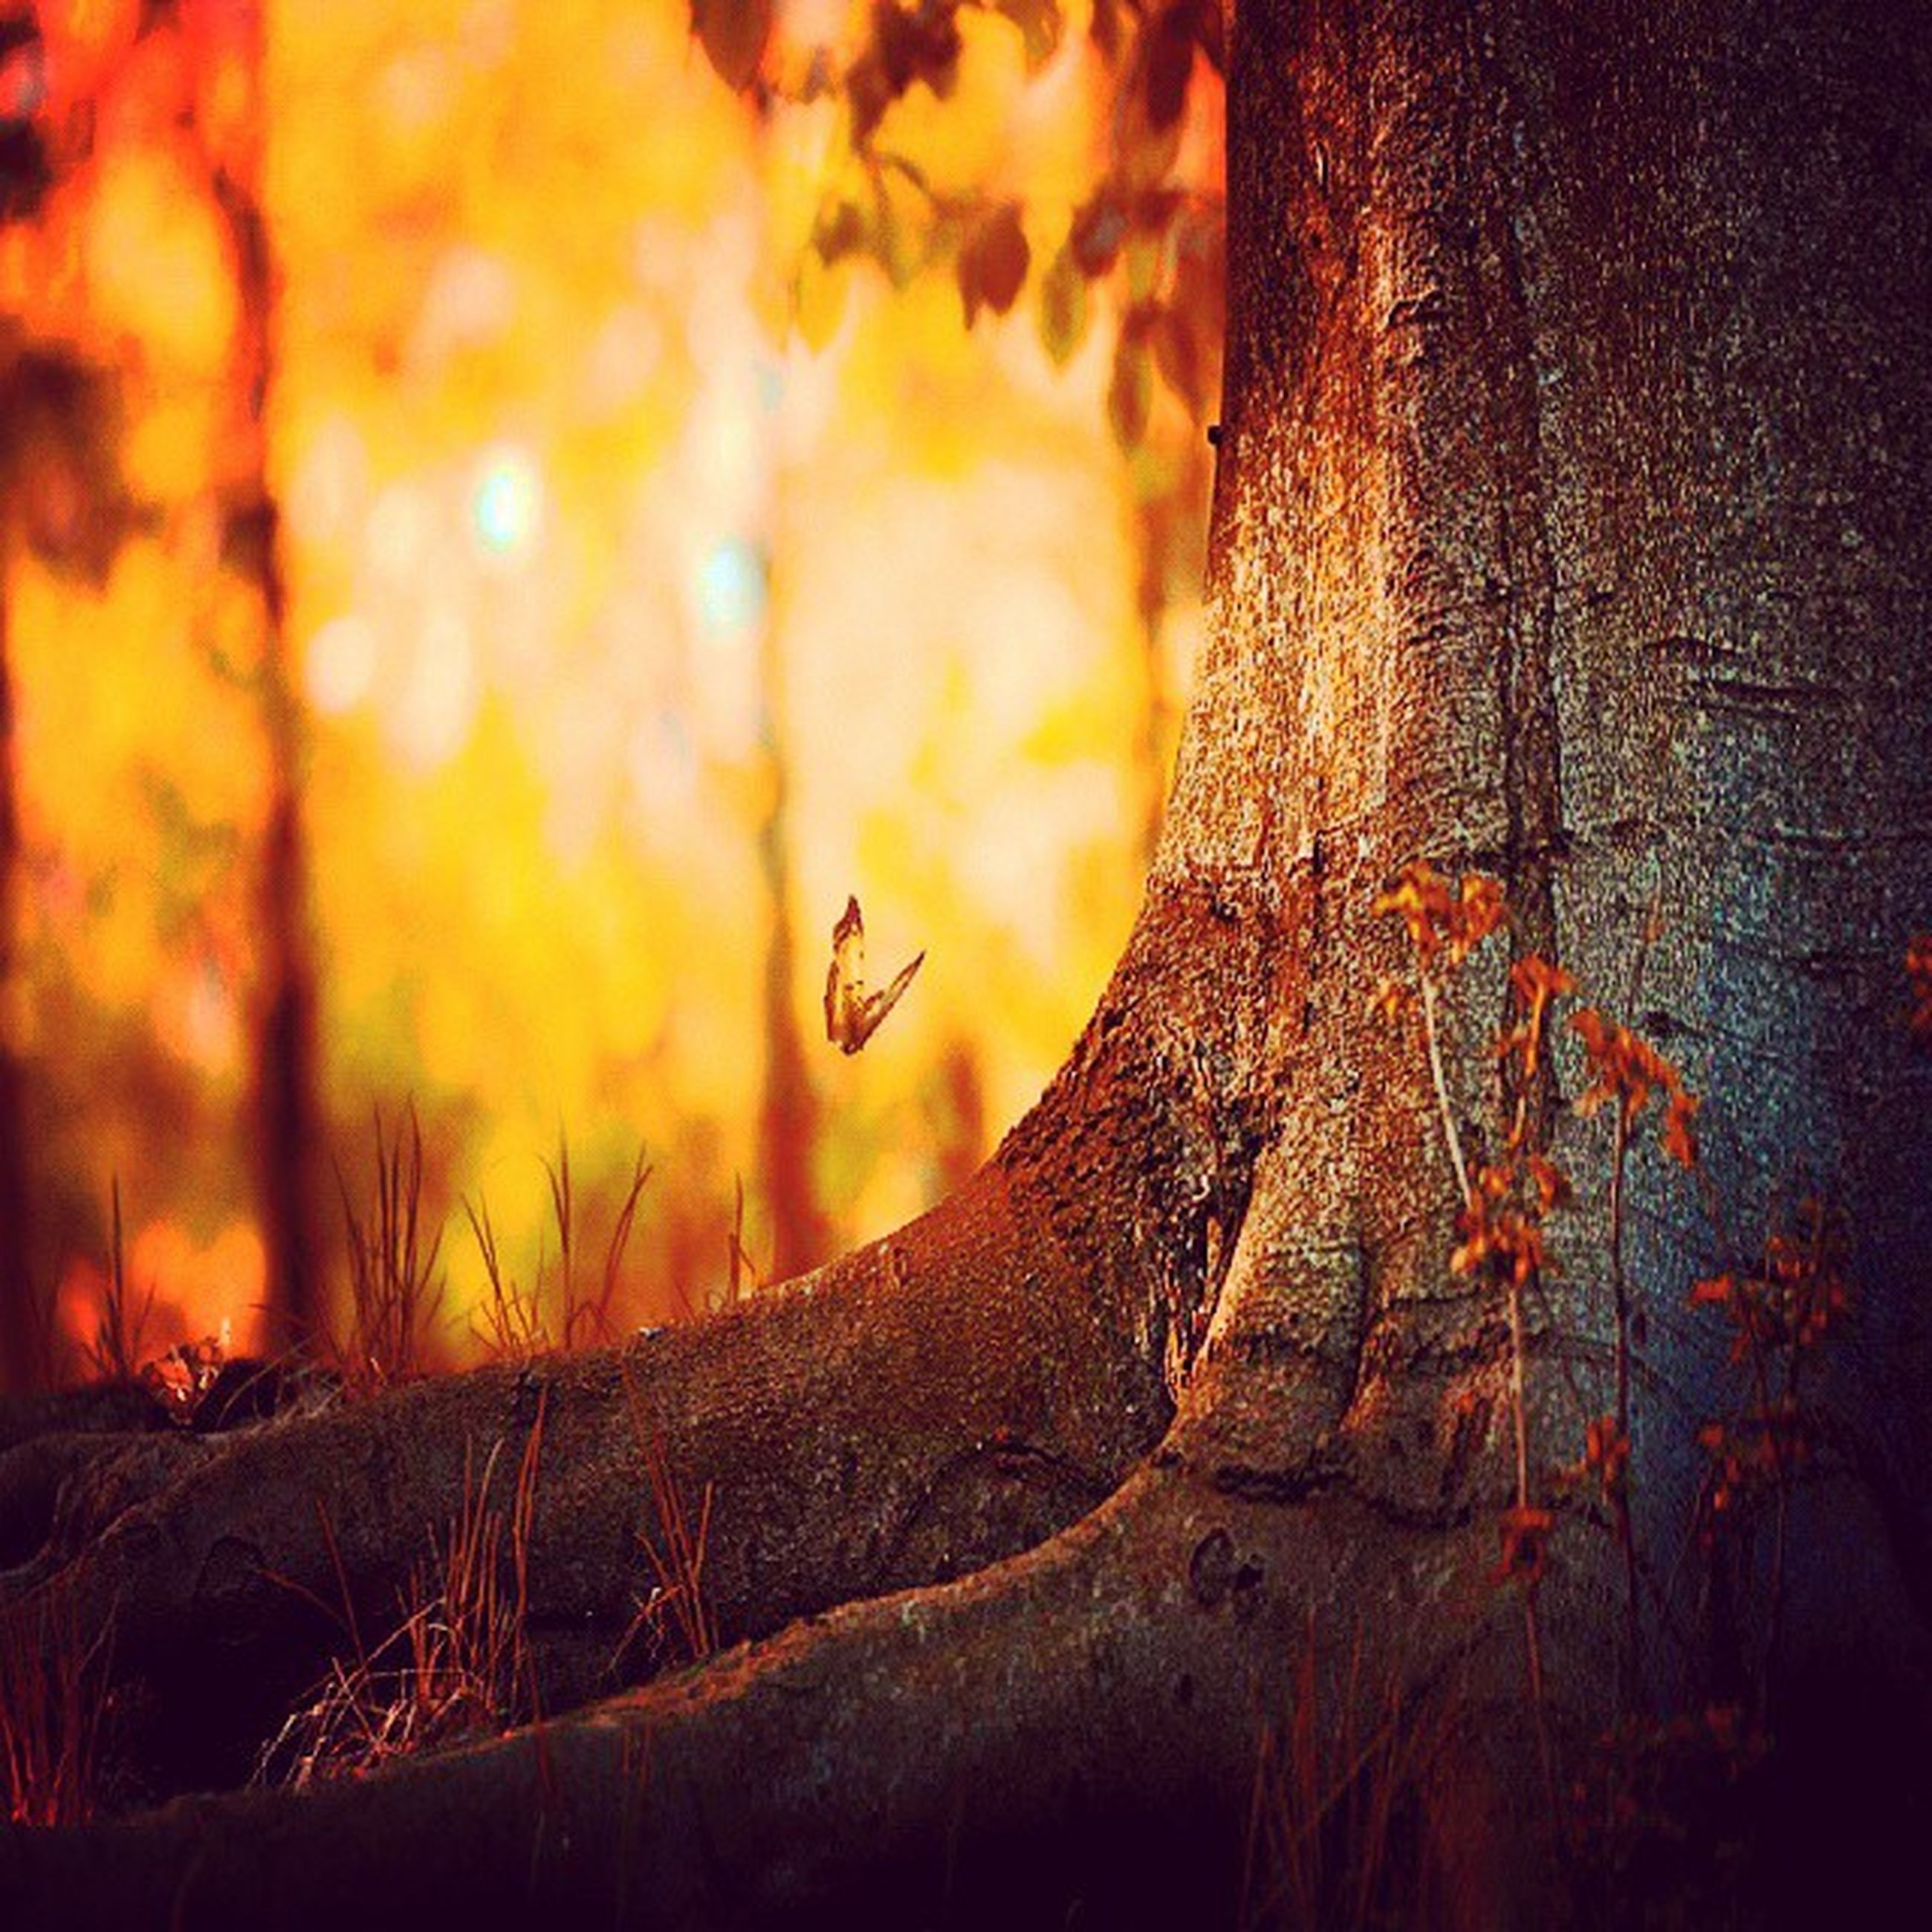 close-up, orange color, focus on foreground, nature, dry, outdoors, tree, forest, textured, auto post production filter, yellow, selective focus, tree trunk, sunset, day, autumn, part of, sunlight